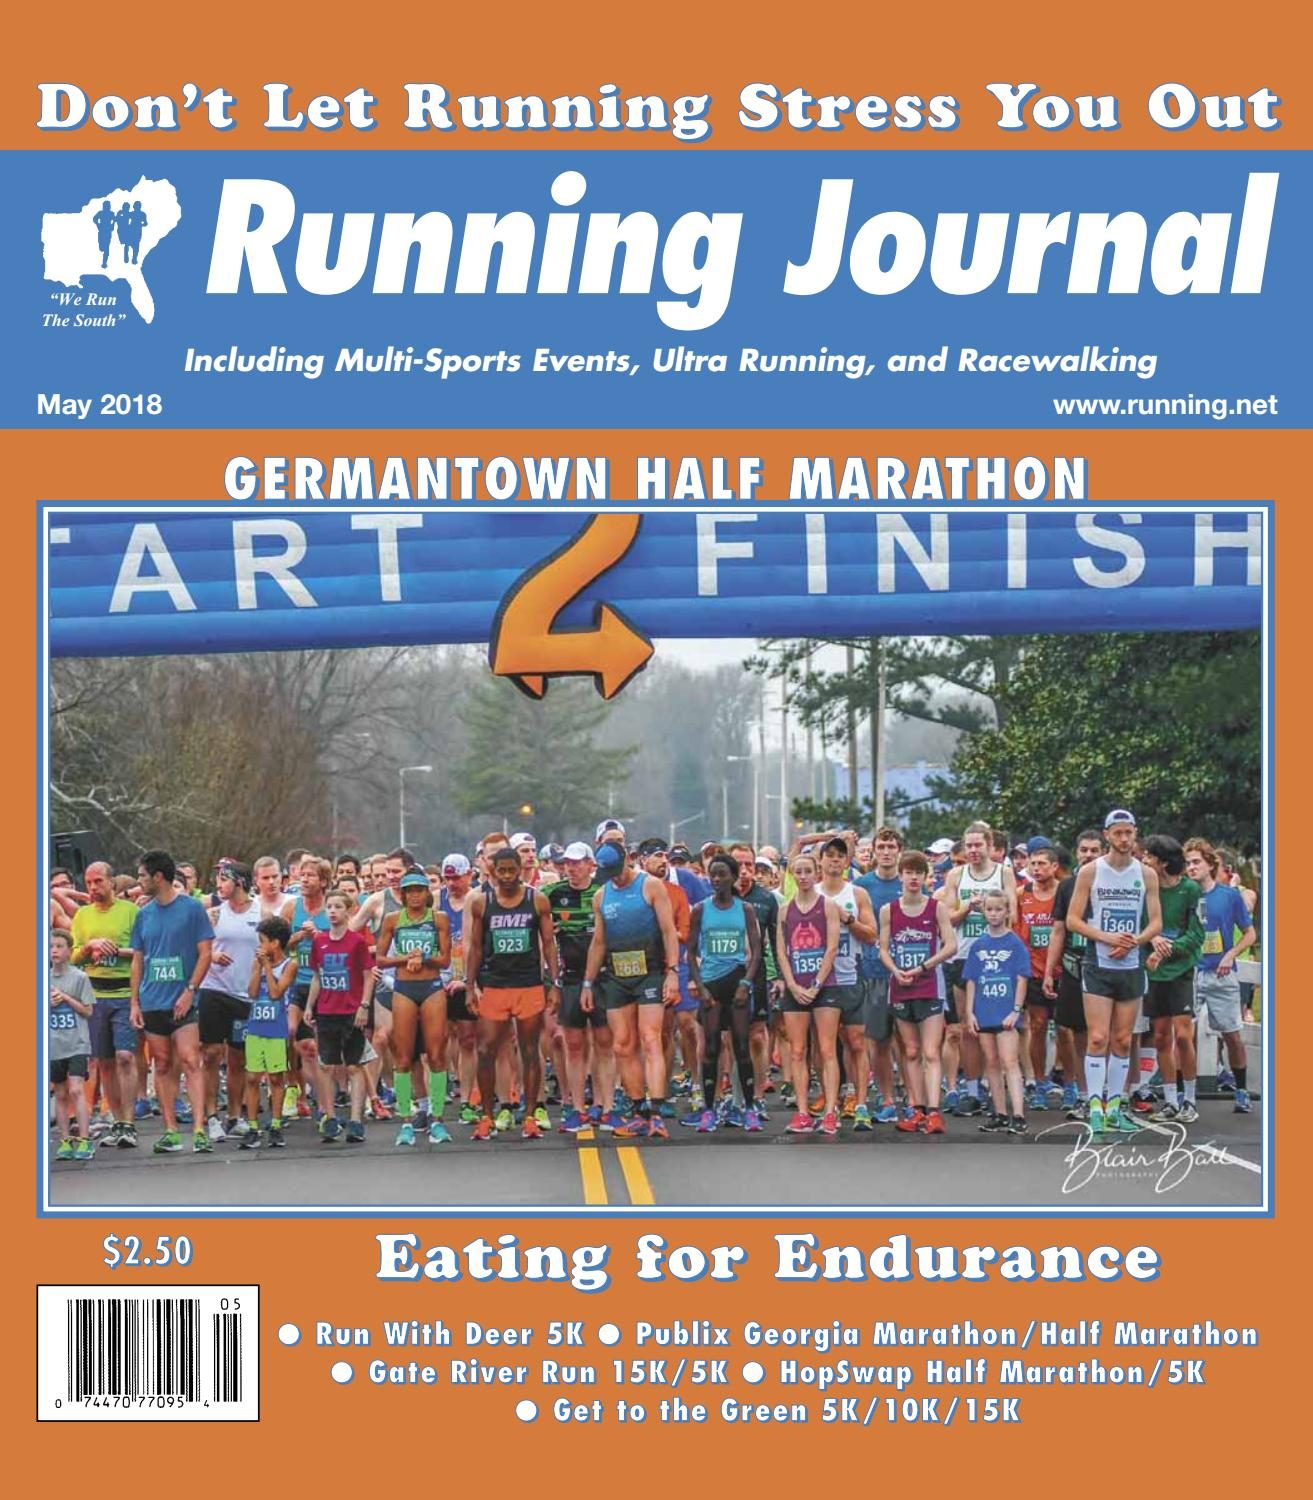 350f0a08b7 RJ1805 by Running Journal - issuu